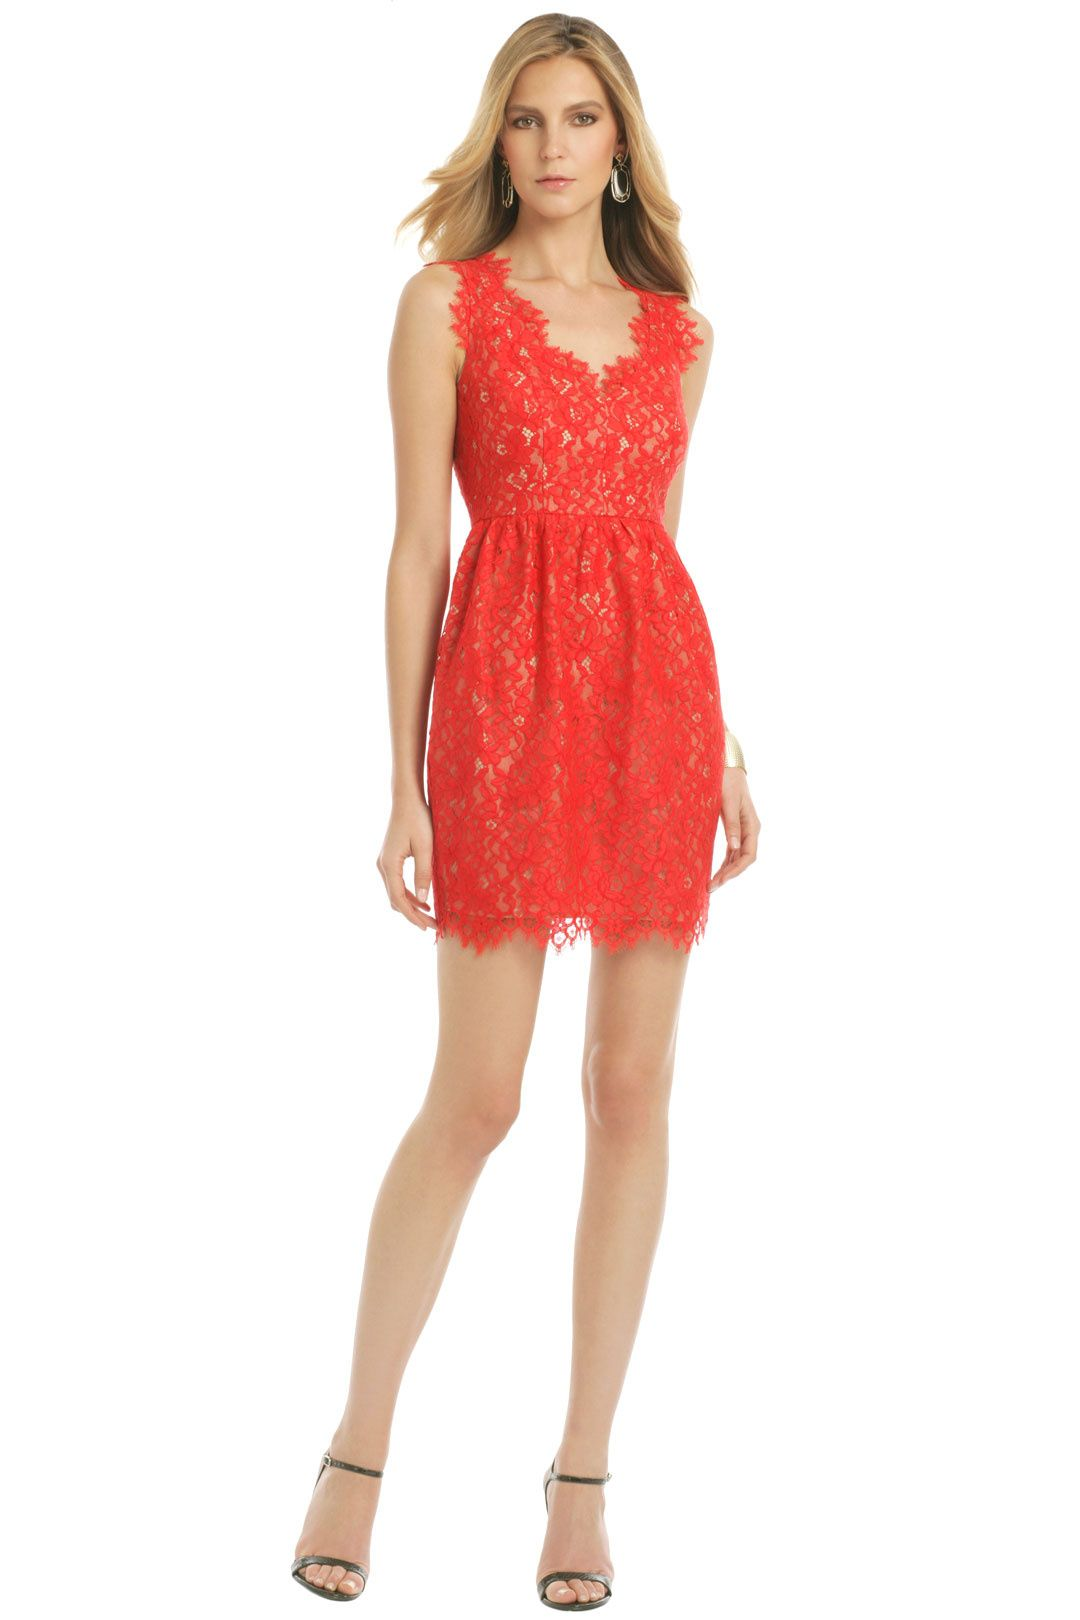 Lace Sierra Dress by Shoshanna for $40 – $50 | Rent The Runway ...